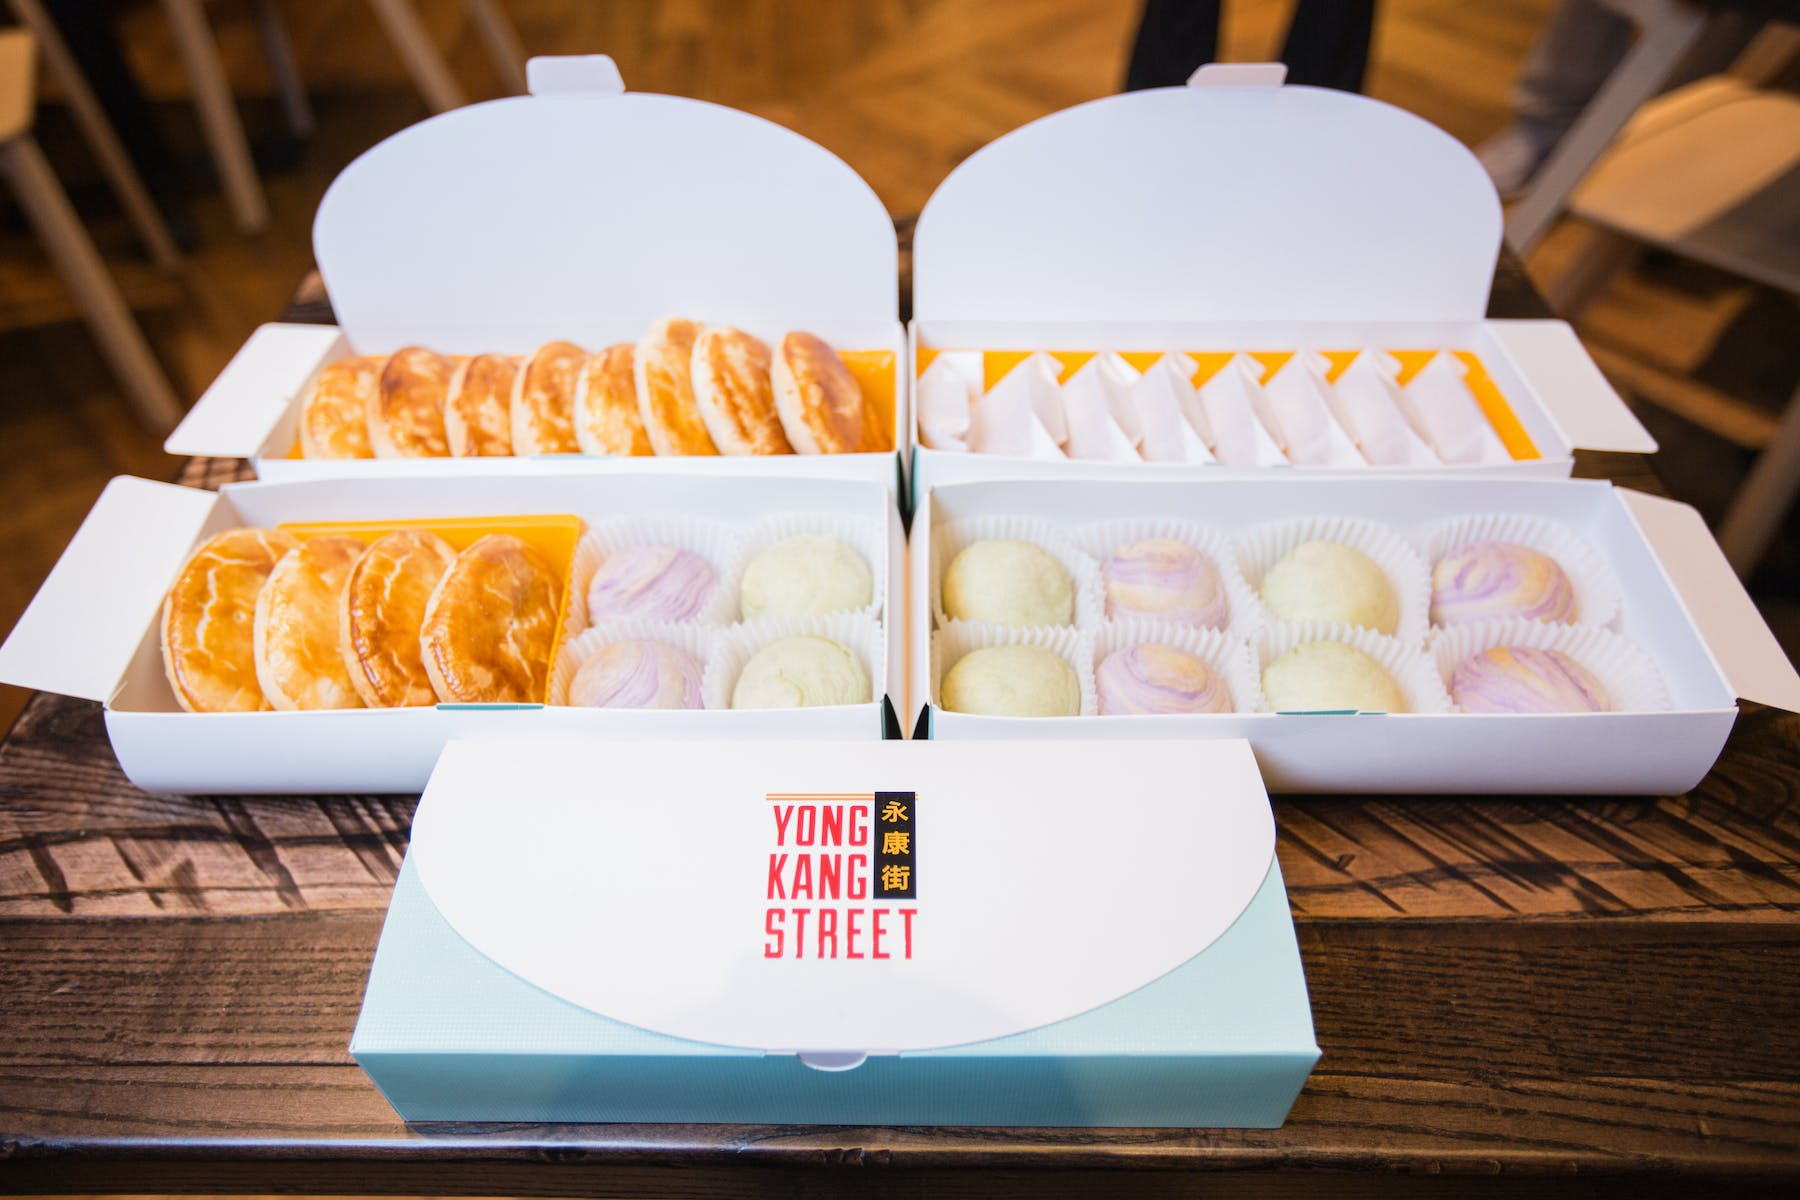 a set of boxes filled with different dumplings and desserts